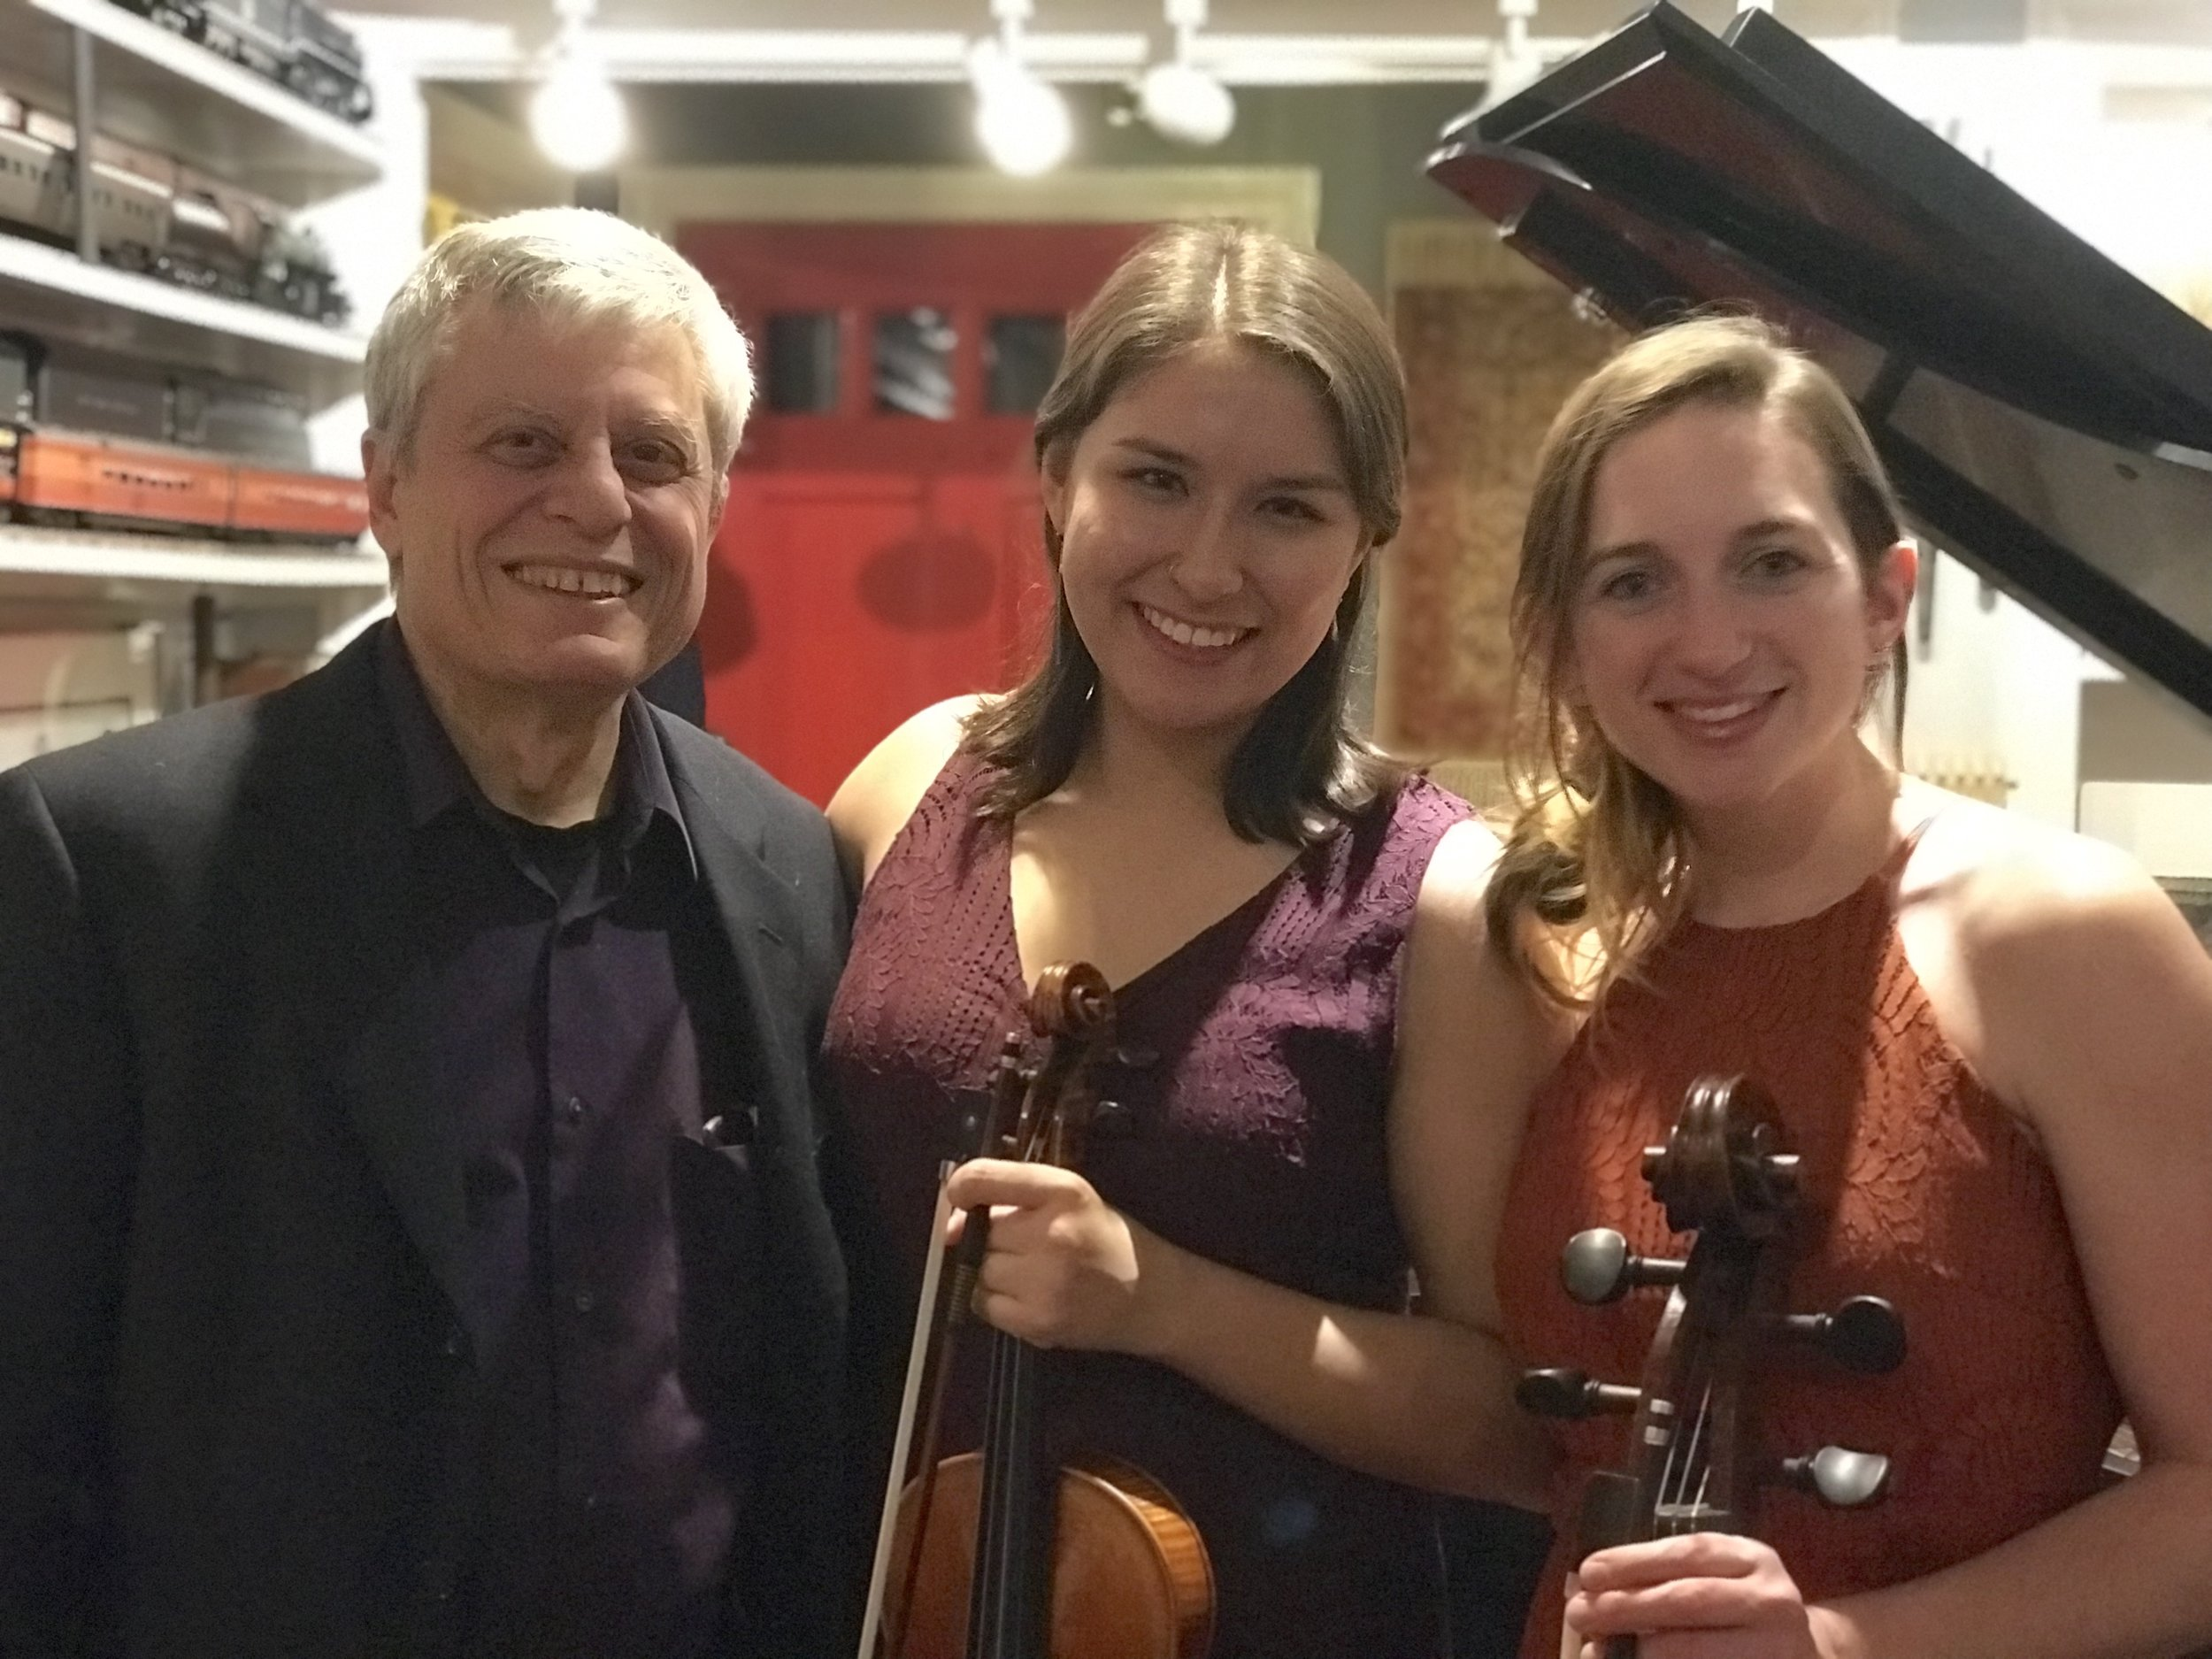 The Milo Trio: Carl Banner, Celaya Kirchner, and Emma Hays Johnson (photo by Tricia Johnson)